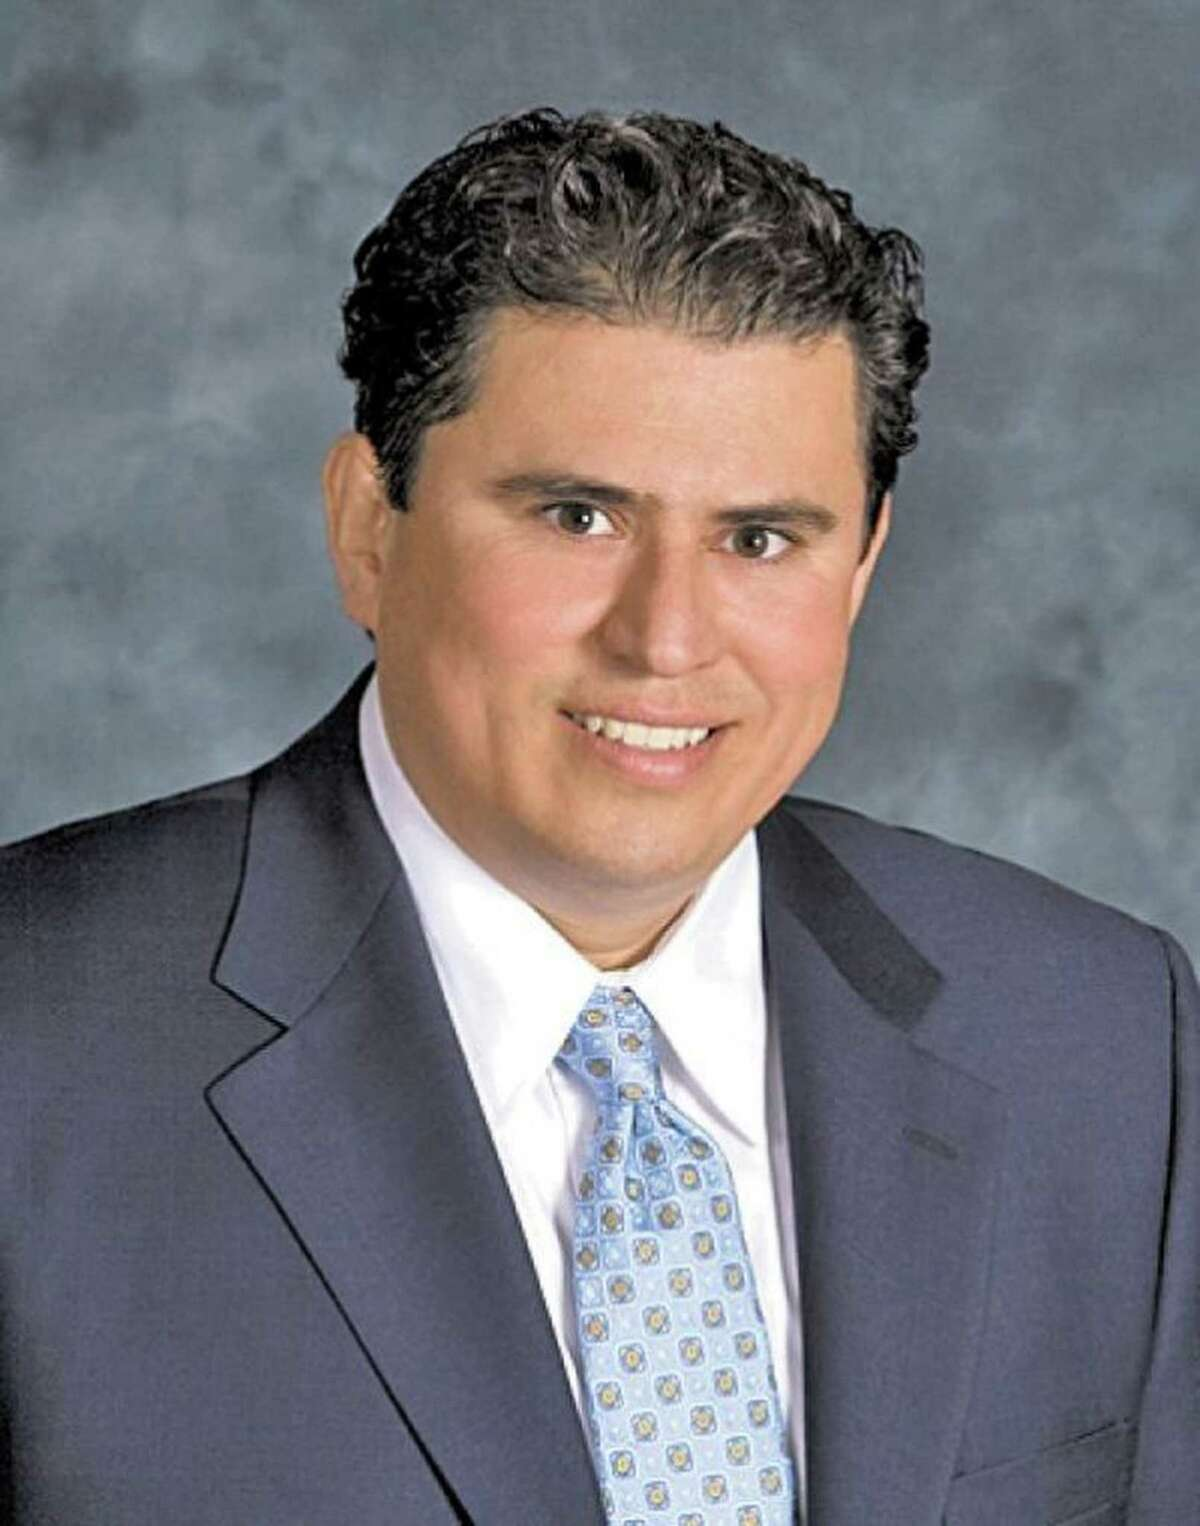 Rolando Pablos, seen in an undated courtesy photo provided Monday, Dec. 5, 2016 by the Governor's Office, has been named the next Secretary of State by Gov. Greg Abbott.